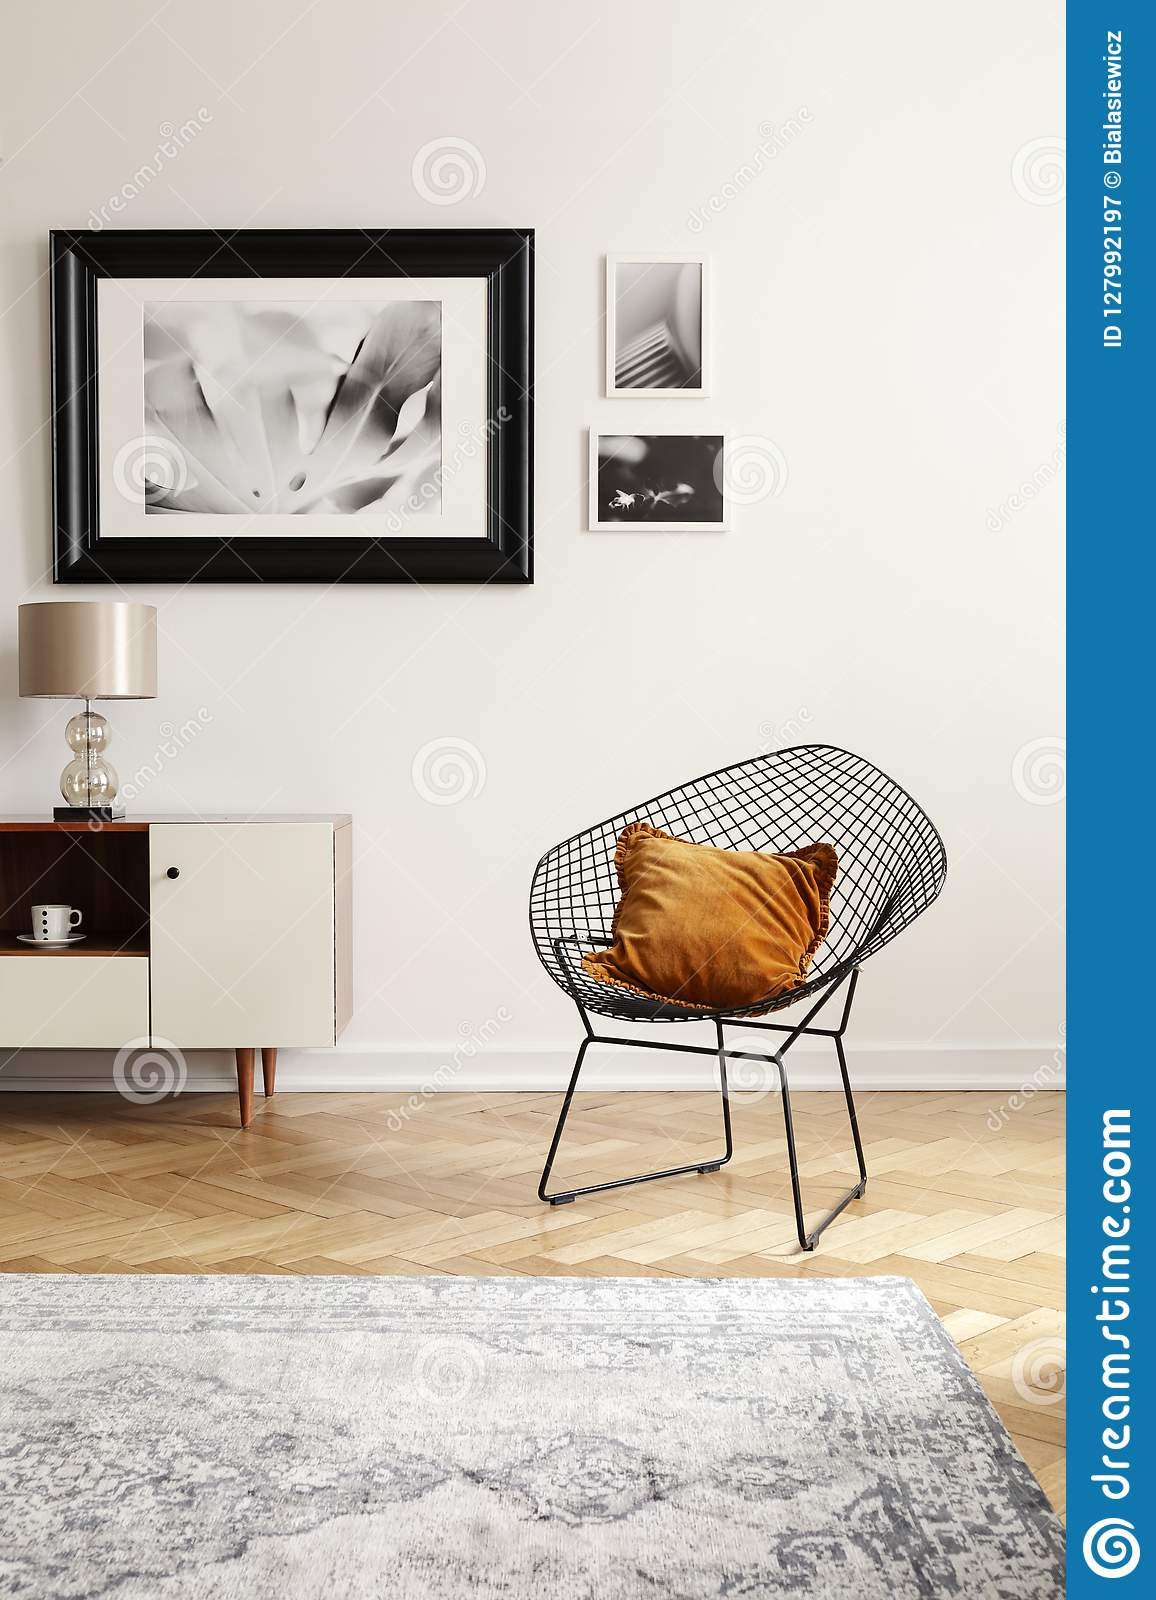 Orange pillow on a black, industrial net chair by a white wall with gallery of mock-up pictures in an elegant living room interior